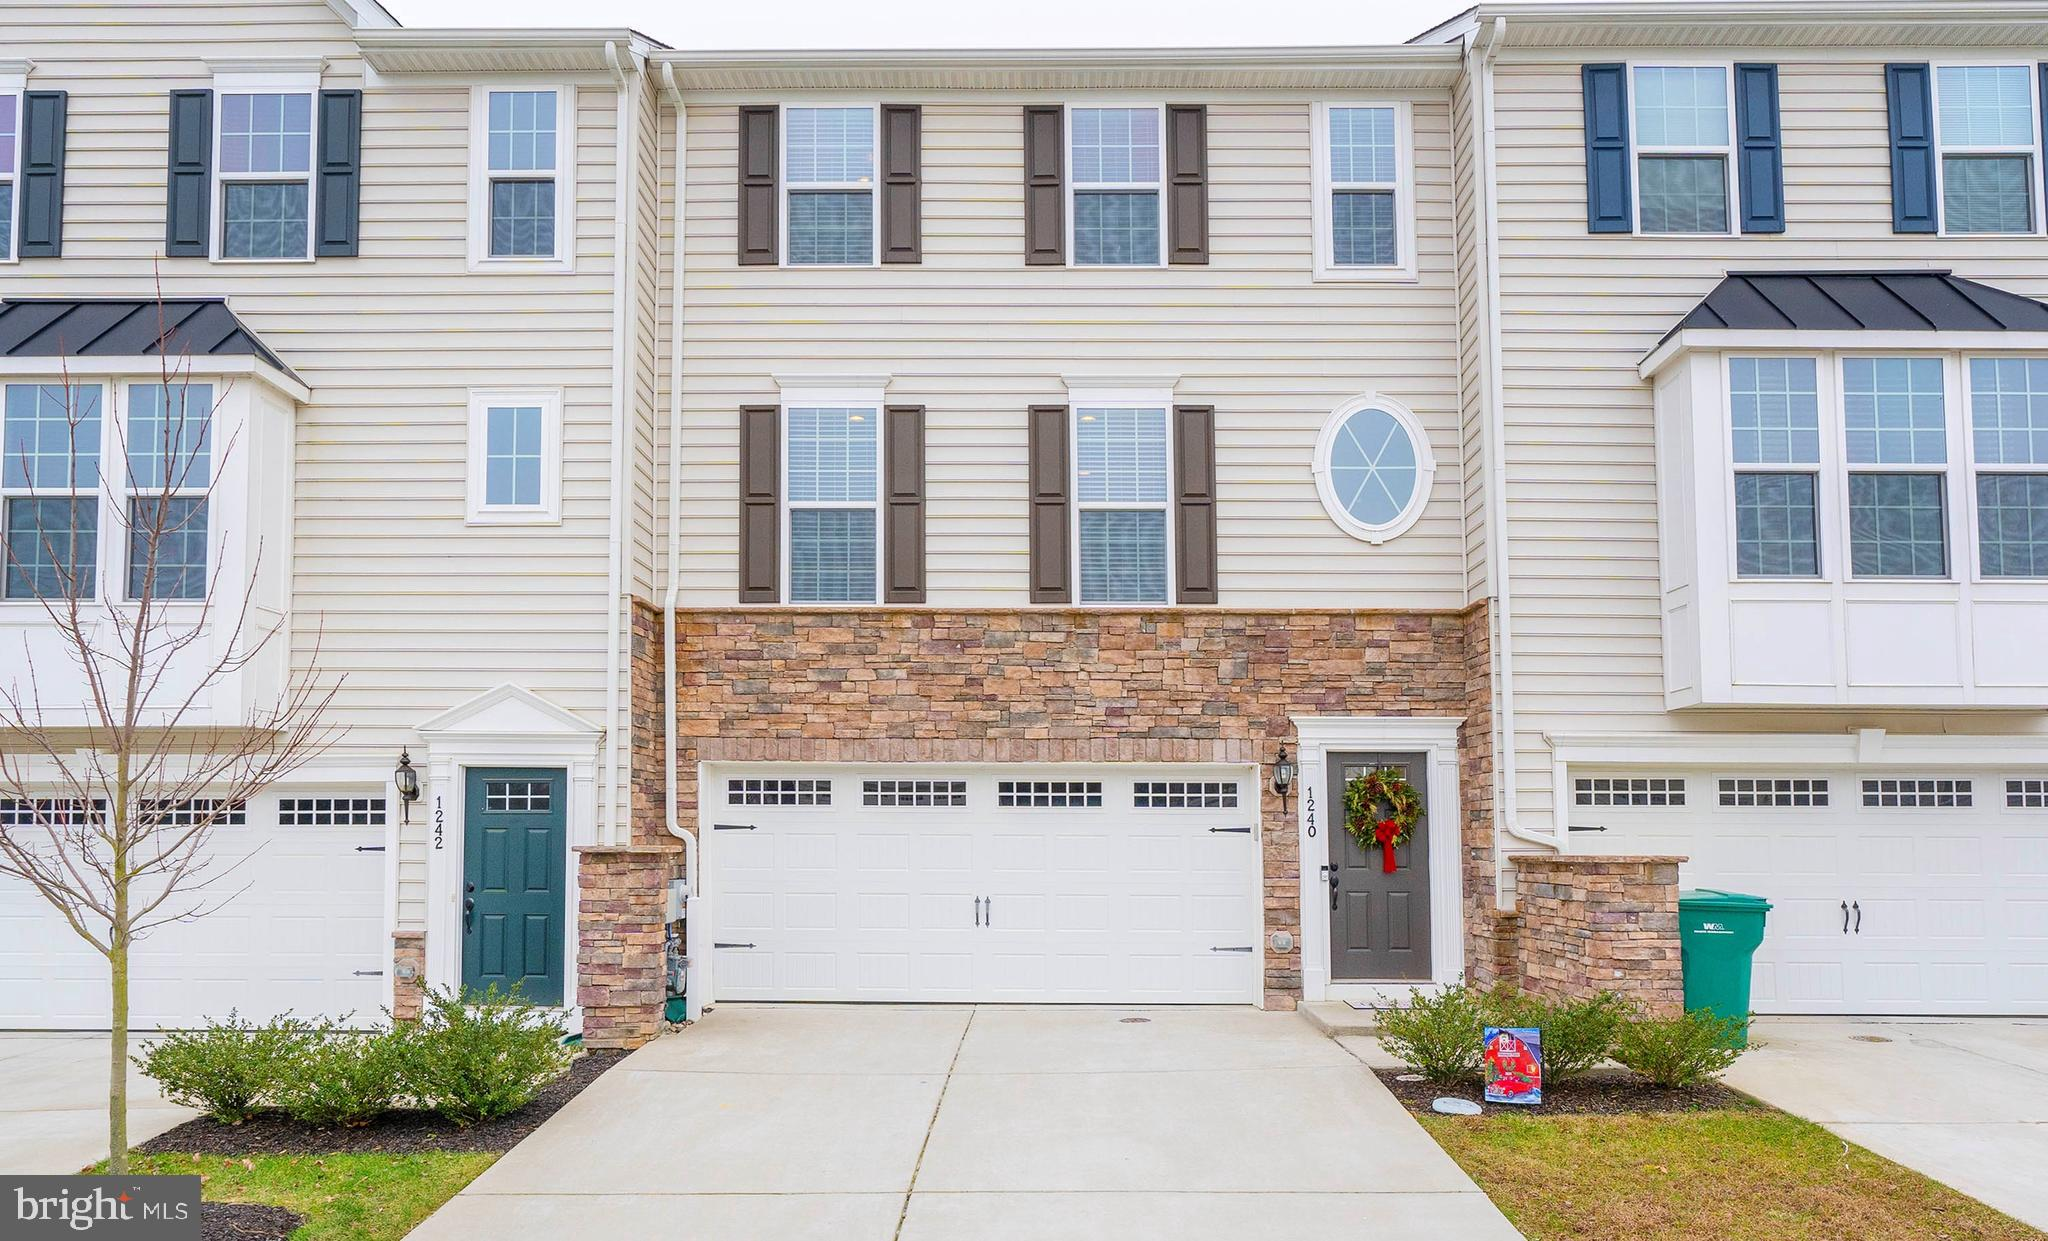 LIKE NEW - Built in 2017, this beautiful 3-Bedroom, 2.5-Bathroom Town Home is in pristine condition!  Located in a PRIME Middletown location & within the desirable Appoquinimink School District.  Arrive and you will notice the partial stacked-stone facade, a 2-CAR GARAGE, and plenty of parking space in the private driveway.  Enter into the foyer on the 1st level where you can go relax in the family room that walks out to the back yard or head up to the main level of the home. This home boasts 3 FULL LEVELS of above-ground living space!  The 2nd floor (main level) of the home features the living room, dining room, powder room, and kitchen.  You will find stunning HANDSCRAPED HARDWOOD FLOORS, tons of natural sunlight, recessed lighting, and neutral paint throughout.  The gourmet kitchen features; GRANITE countertops, STAINLESS STEEL APPLIANCES, gas cooking, a pantry, & an island.  A door from the dining area leads to the 2nd story LOW-MAINTENANCE VINYL DECK.  Head to the upper level where you will find 3 bedrooms, 2 full baths & the 3rd FLOOR LAUNDRY CLOSET (for added convenience!).  The master suite includes a WALK-IN CLOSET & a 5-PIECE MASTER BATHROOM.  The master bathroom features tile floors, a soaking tub, stall shower, double sinks & tile shower/tub surrounds.  Two additional bedrooms can be found down the hall, both spacious & with ceiling fans.  The 2nd bathroom is down the hall and features tile floors and a tile shower surround.  Don't forget about the bonus space you have here on the first floor, which could be used as a family room, entertainment space or even an oversized home office!  Built from the ground up just in 2017, this is your opportunity to own a home with ALL NEWER SYSTEMS & FIXTURES throughout - all without the wait and premiums for new construction!  ALL APPLIANCES ARE INCLUDED.  Do not wait, call today to schedule your tour before it's too late!